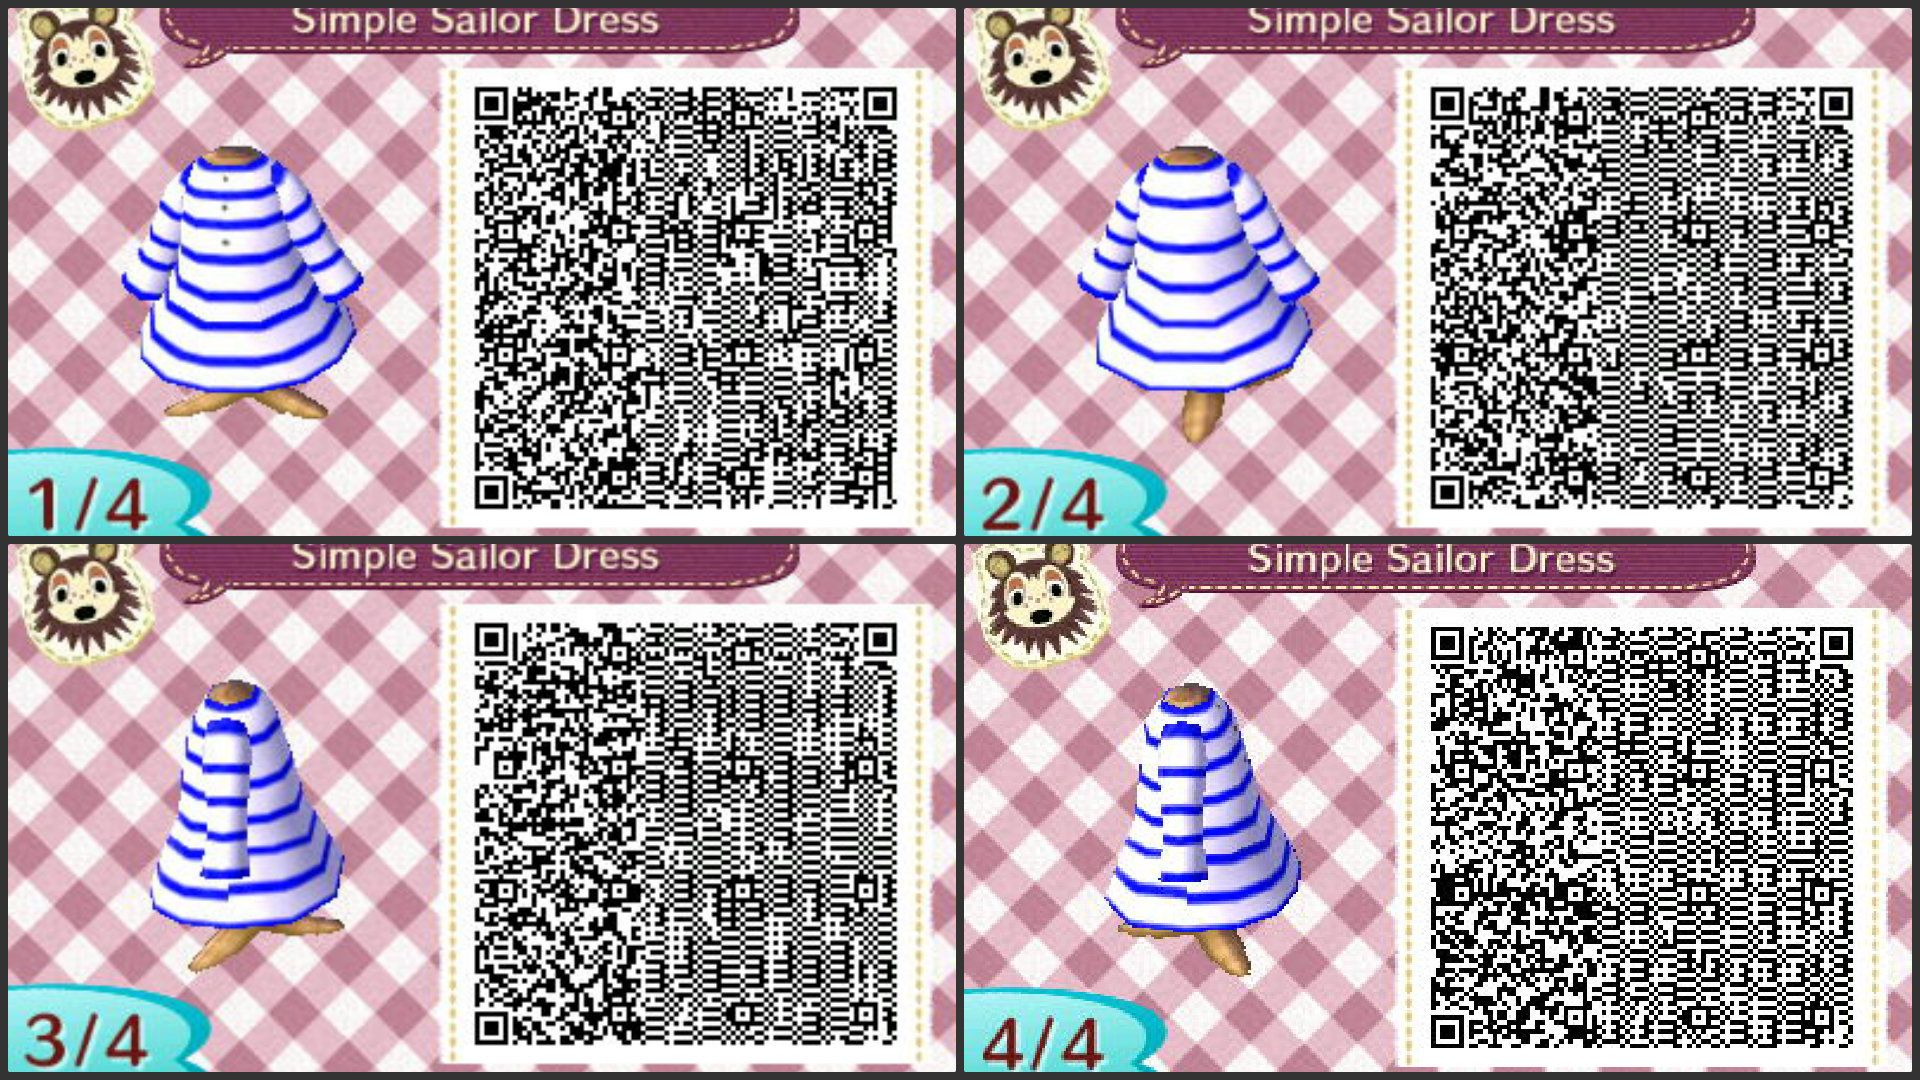 Animal Crossing New Leaf Simple Sailor Dress Qr Code Guess Who  # Muebles Festivos Animal Crossing